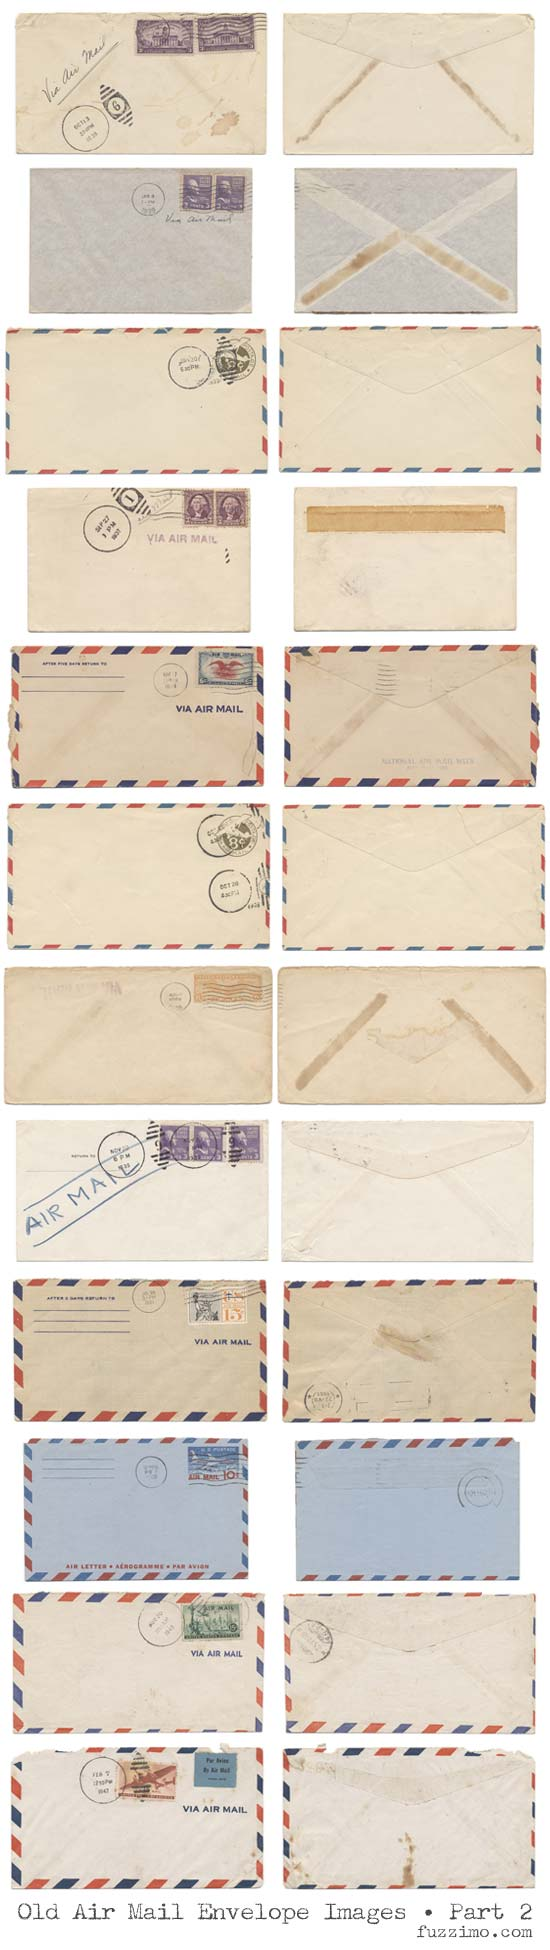 fzm-Old-Air-Mail-Envelopes-Part2-02